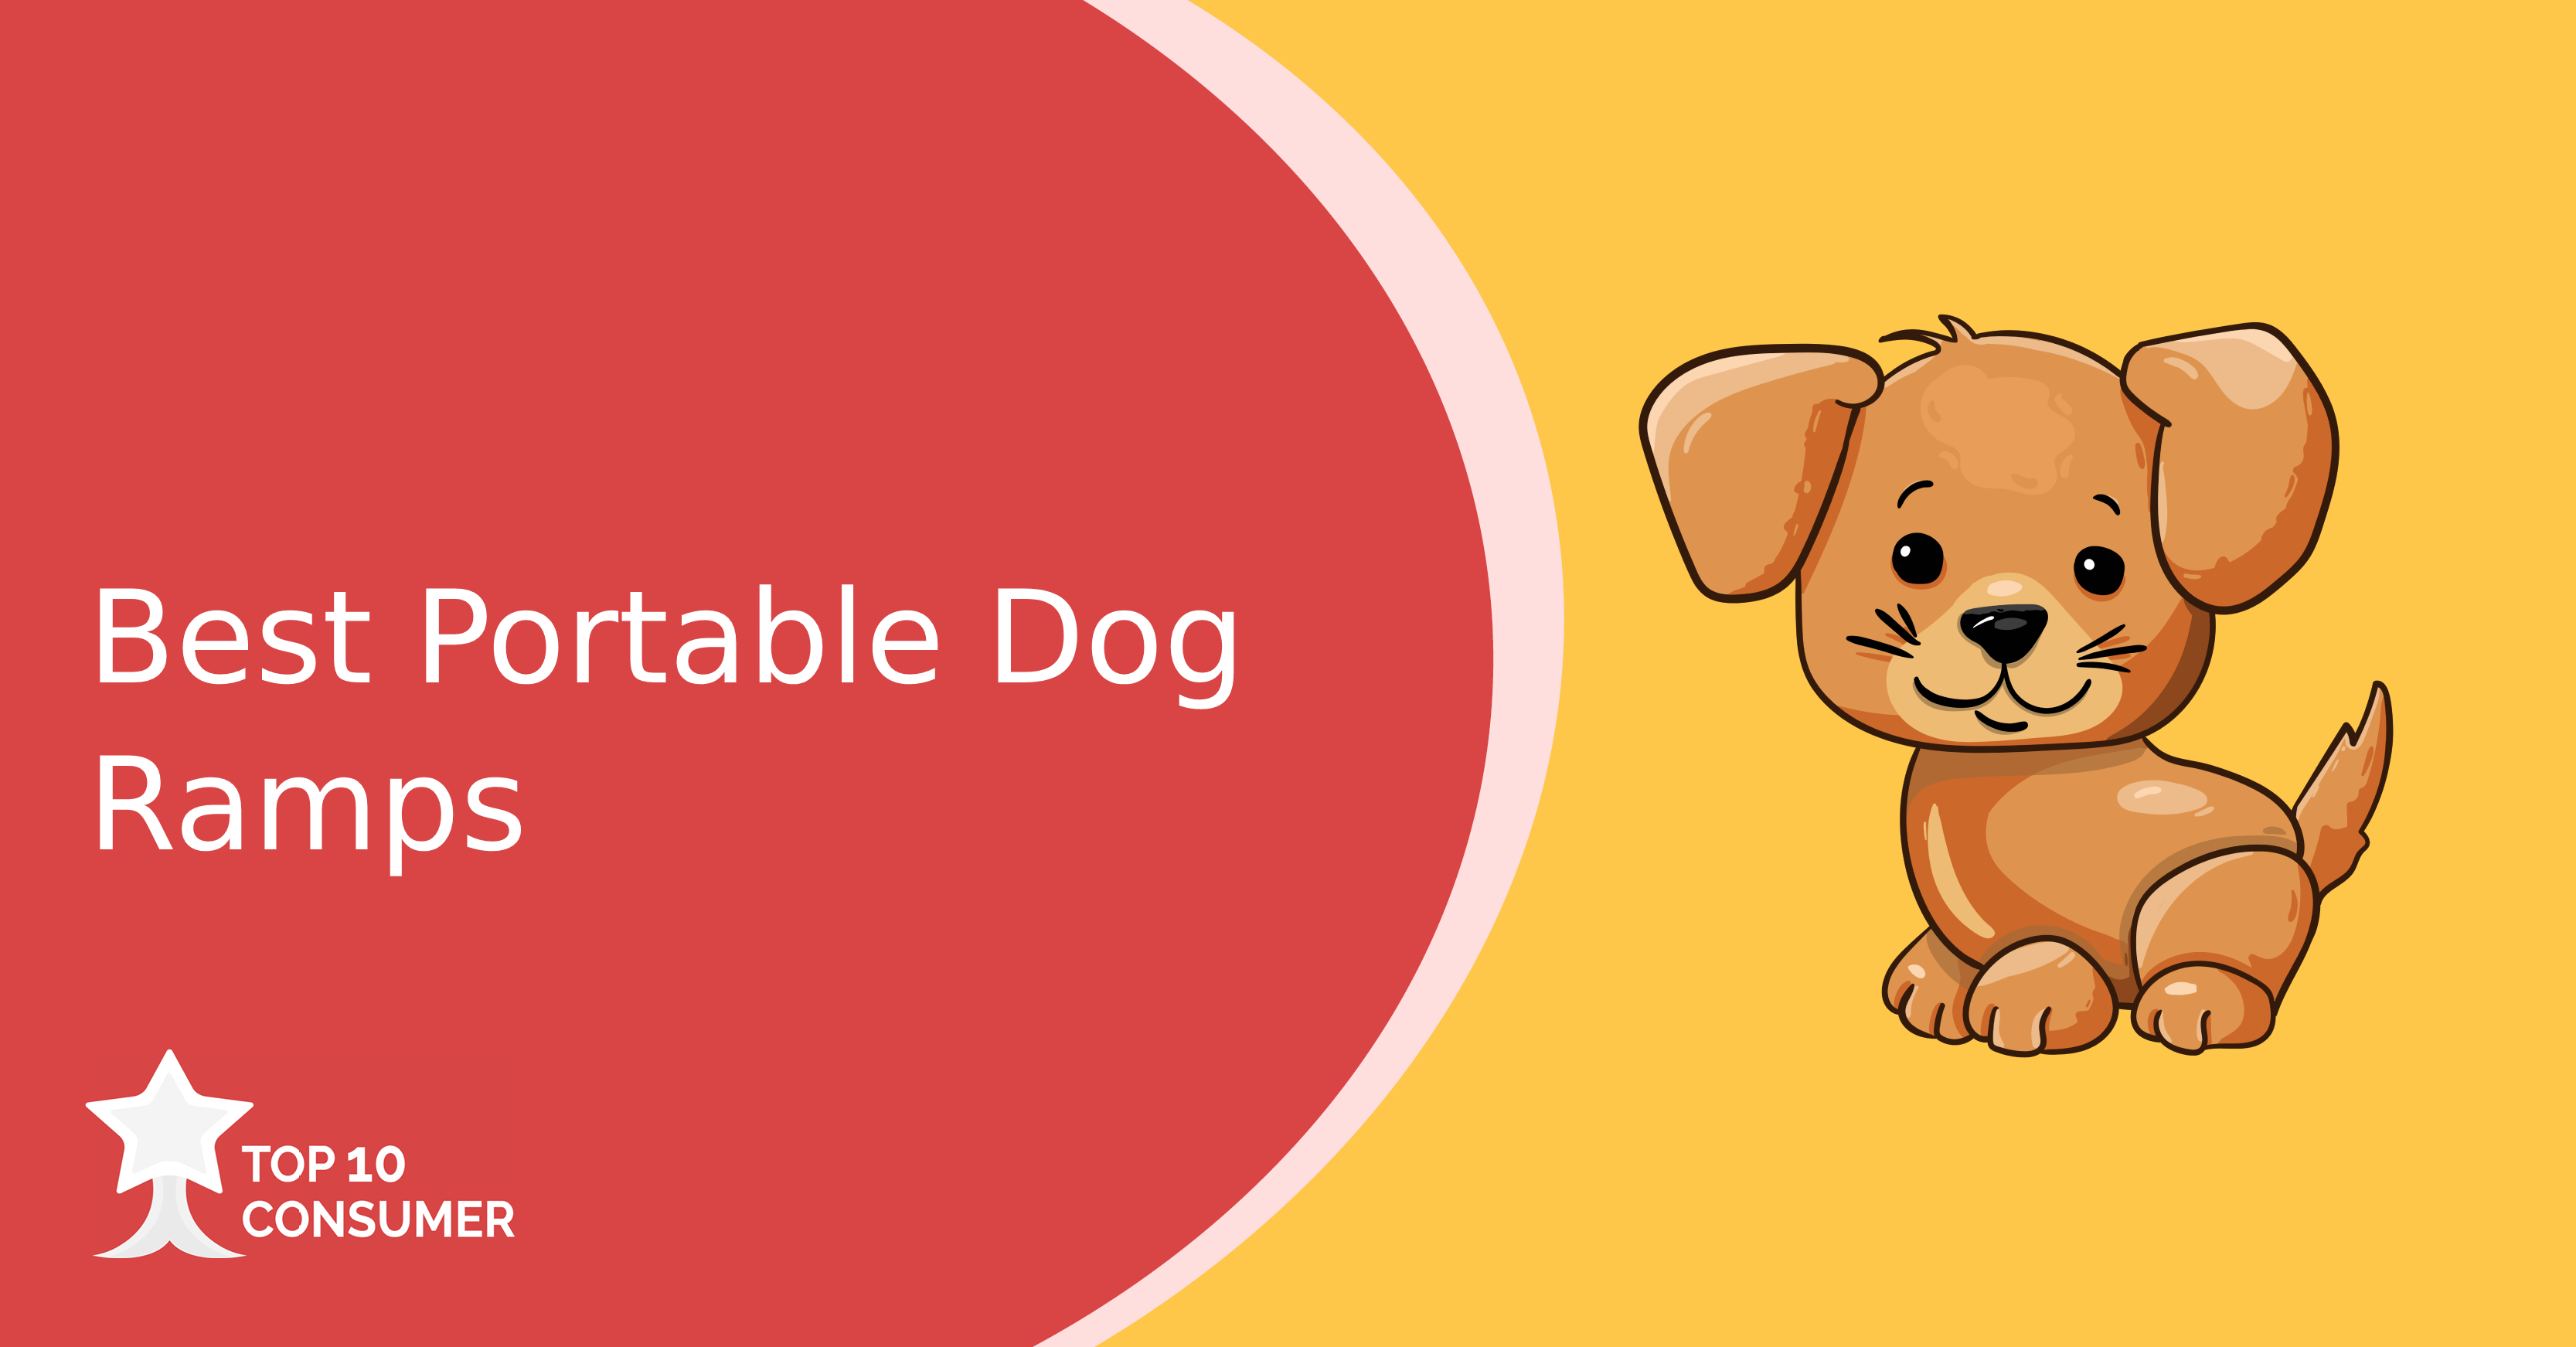 Best Portable Dog Ramps